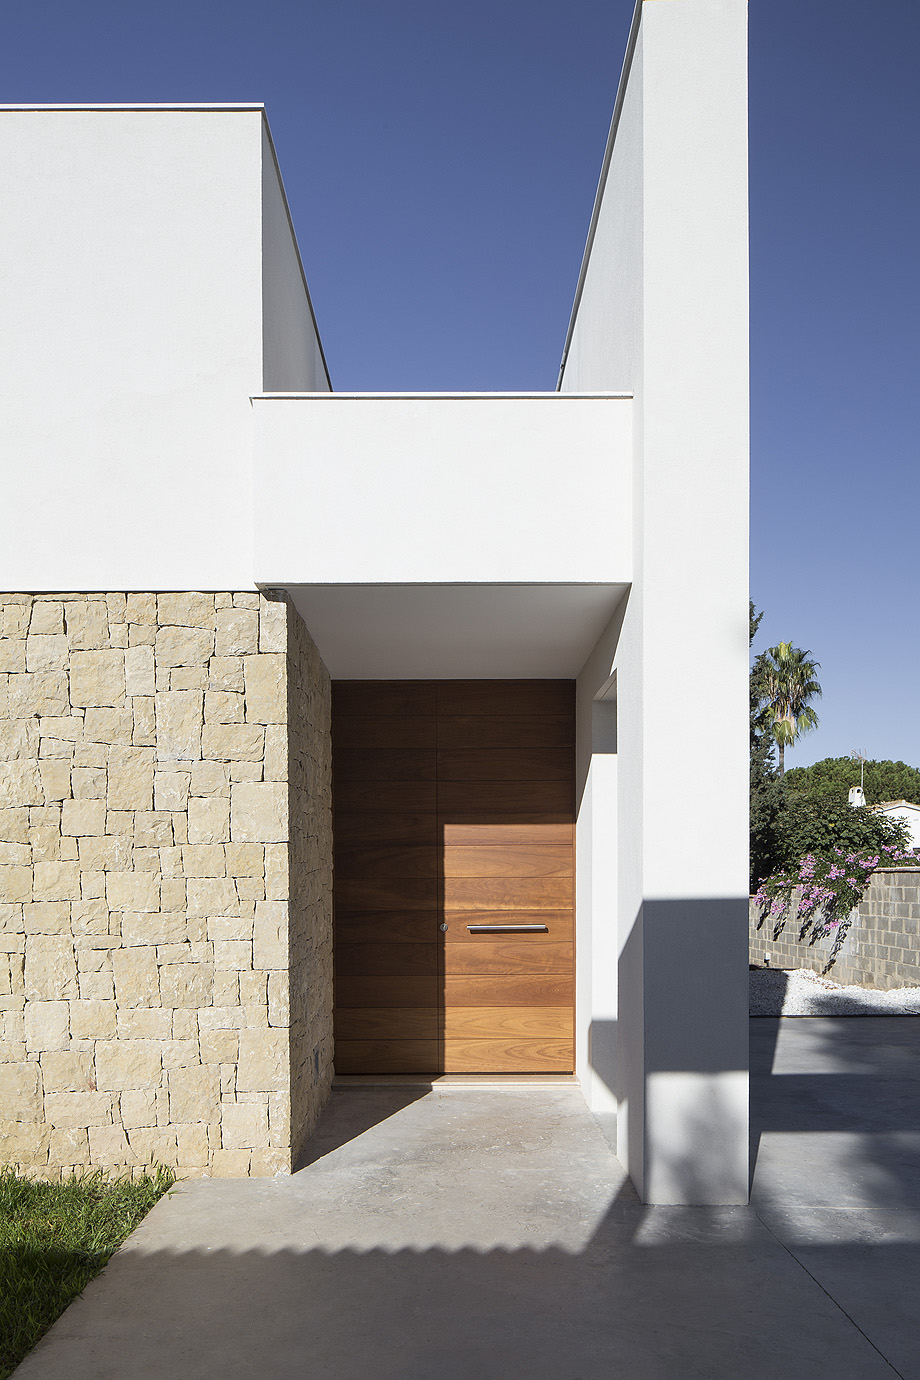 casa pi smb arquitectura + nonna design projects - foto david zarzoso (1)